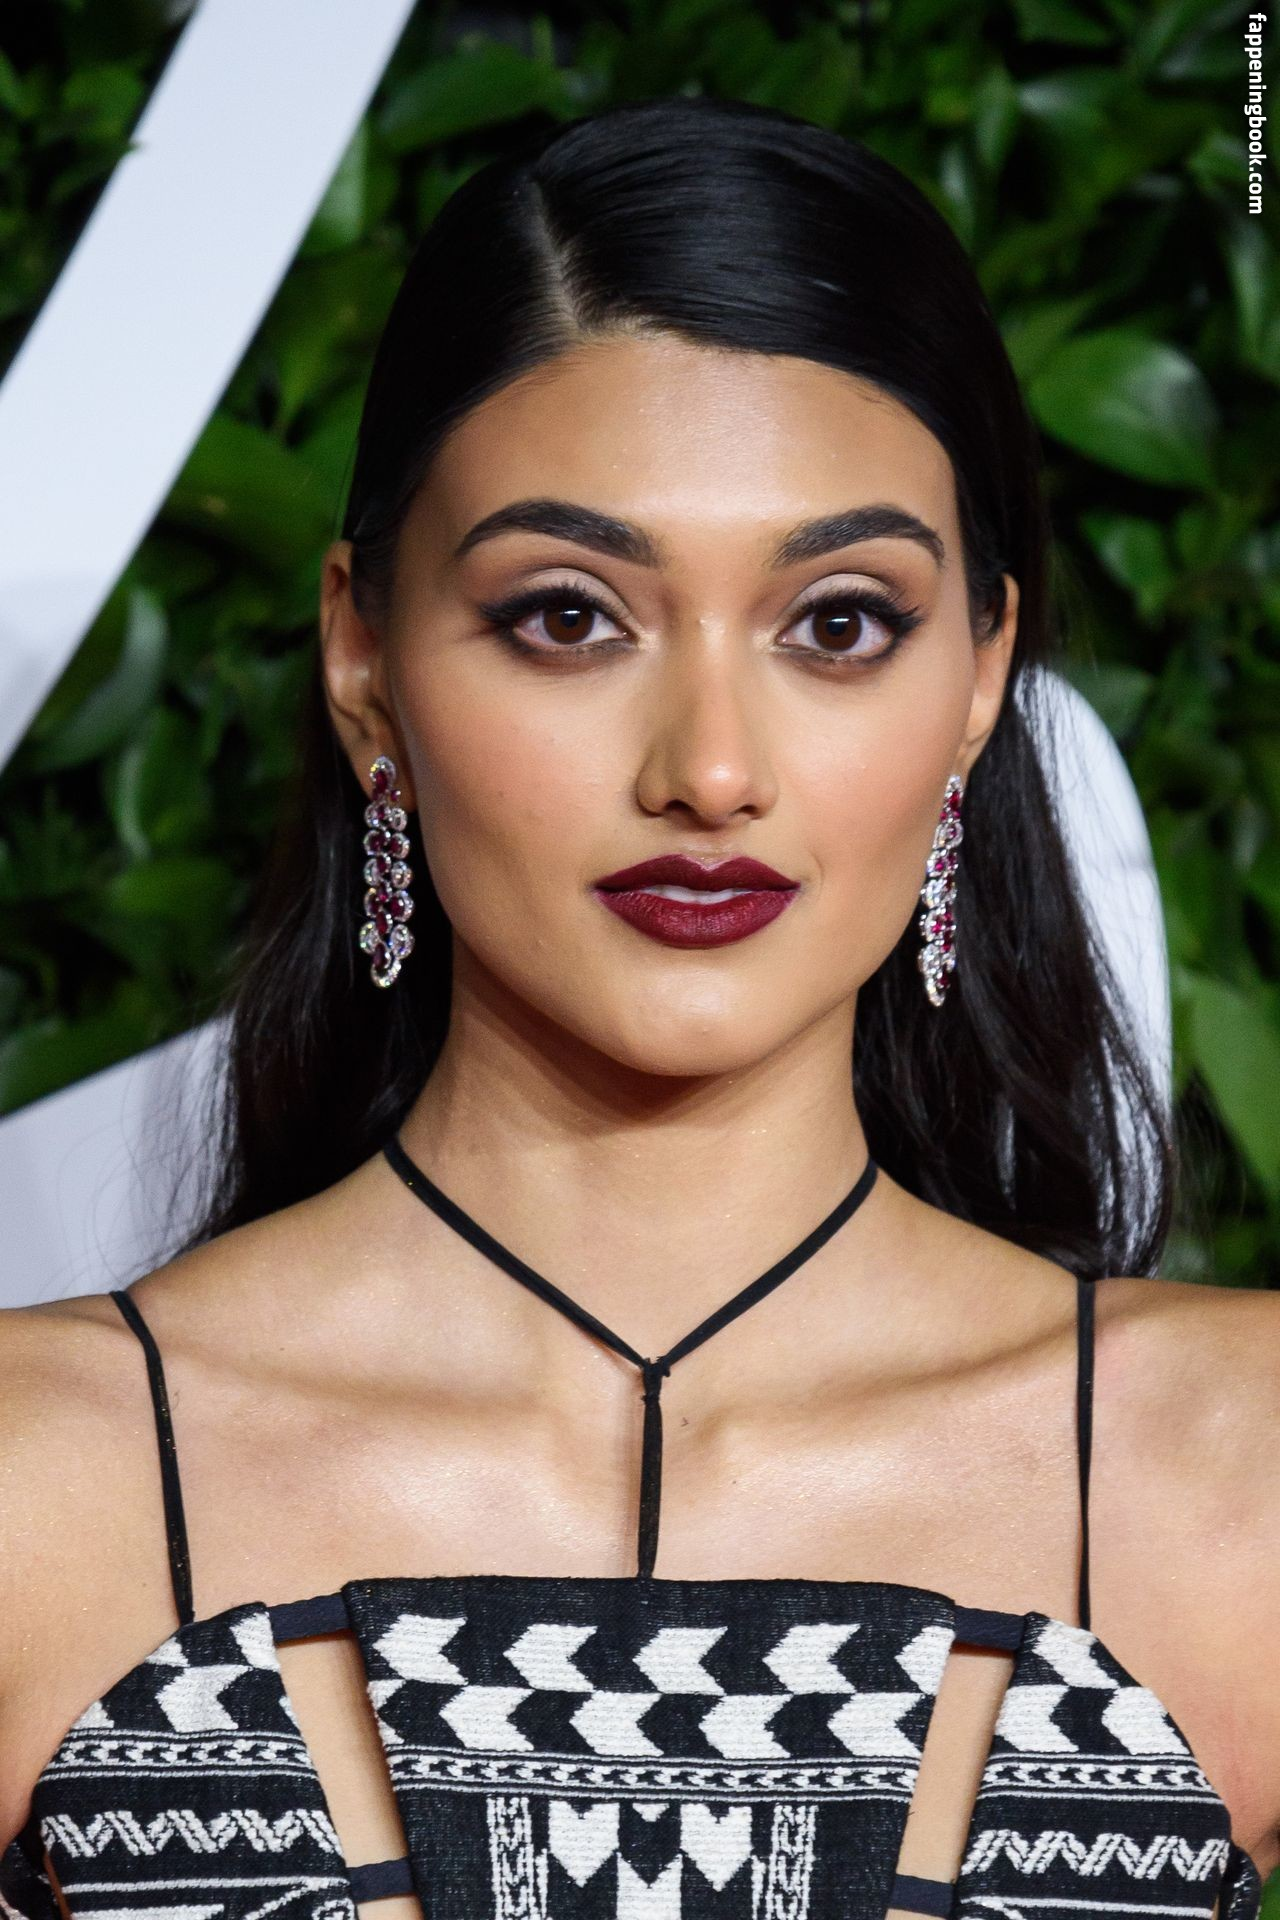 Neelam Gill Nude, Sexy, The Fappening, Uncensored - Photo